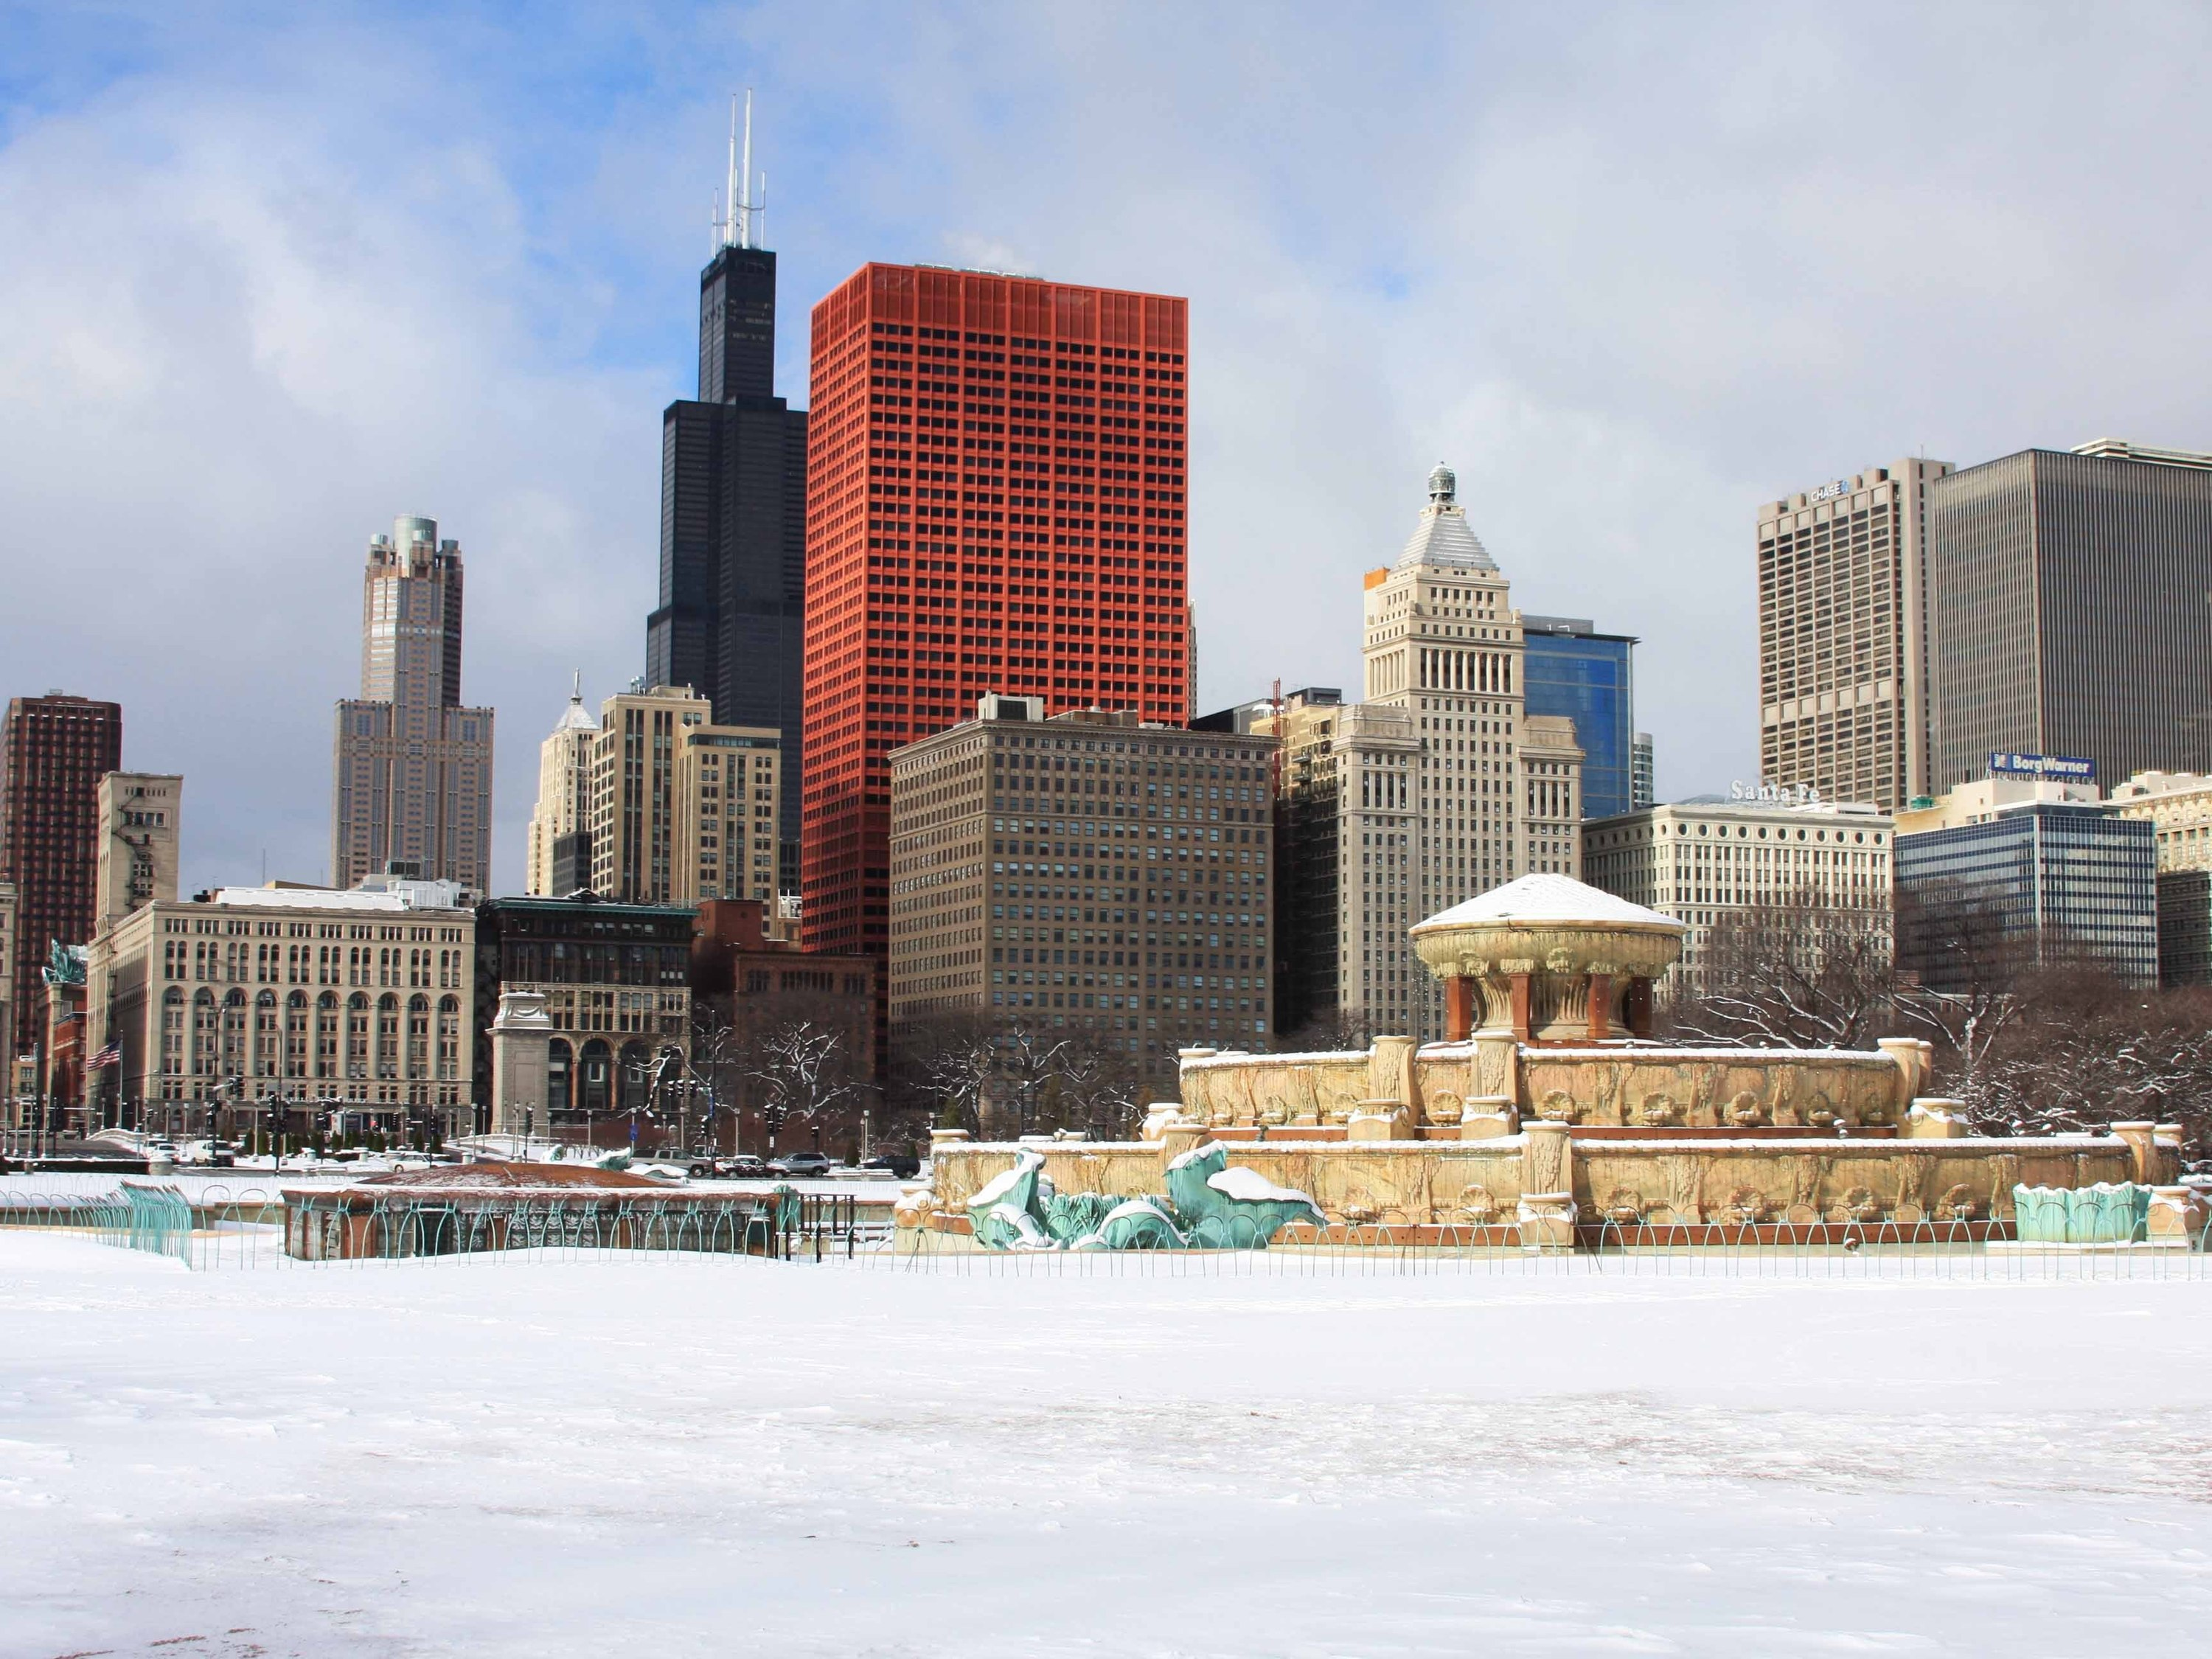 Things to do outdoors this winter in Chicago